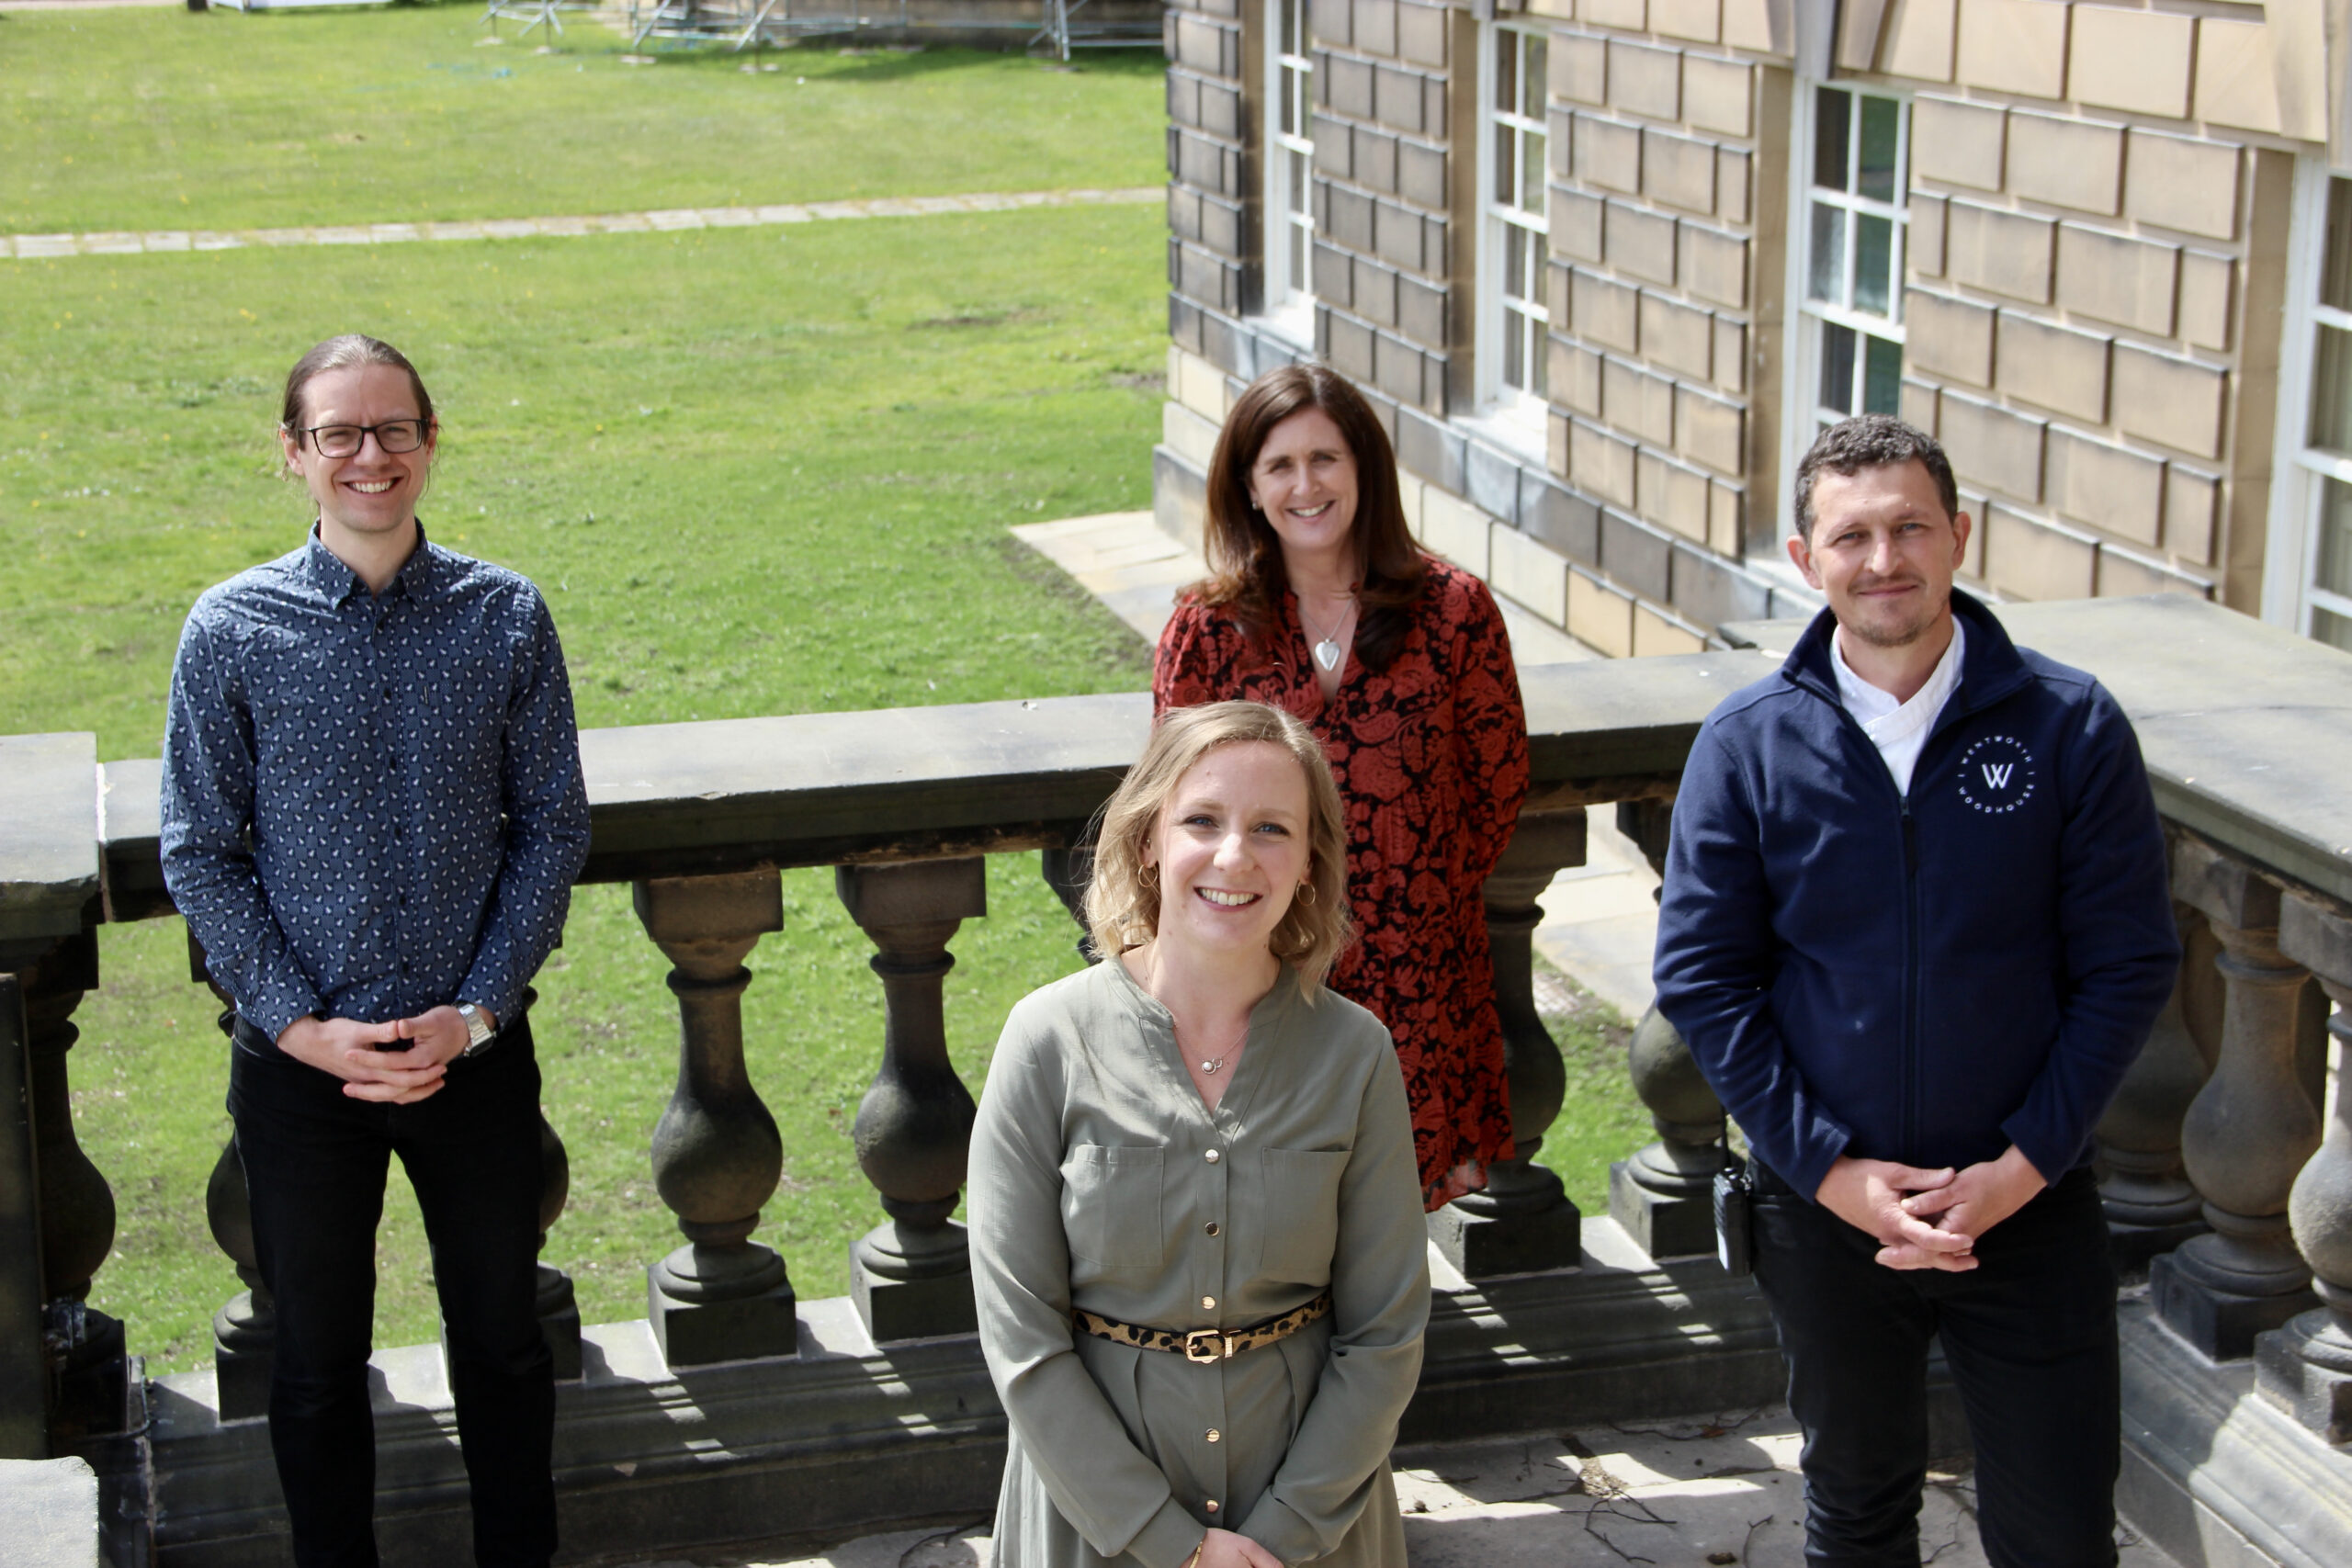 The new staff at Wentworth stand outside the building and smile at the camera.